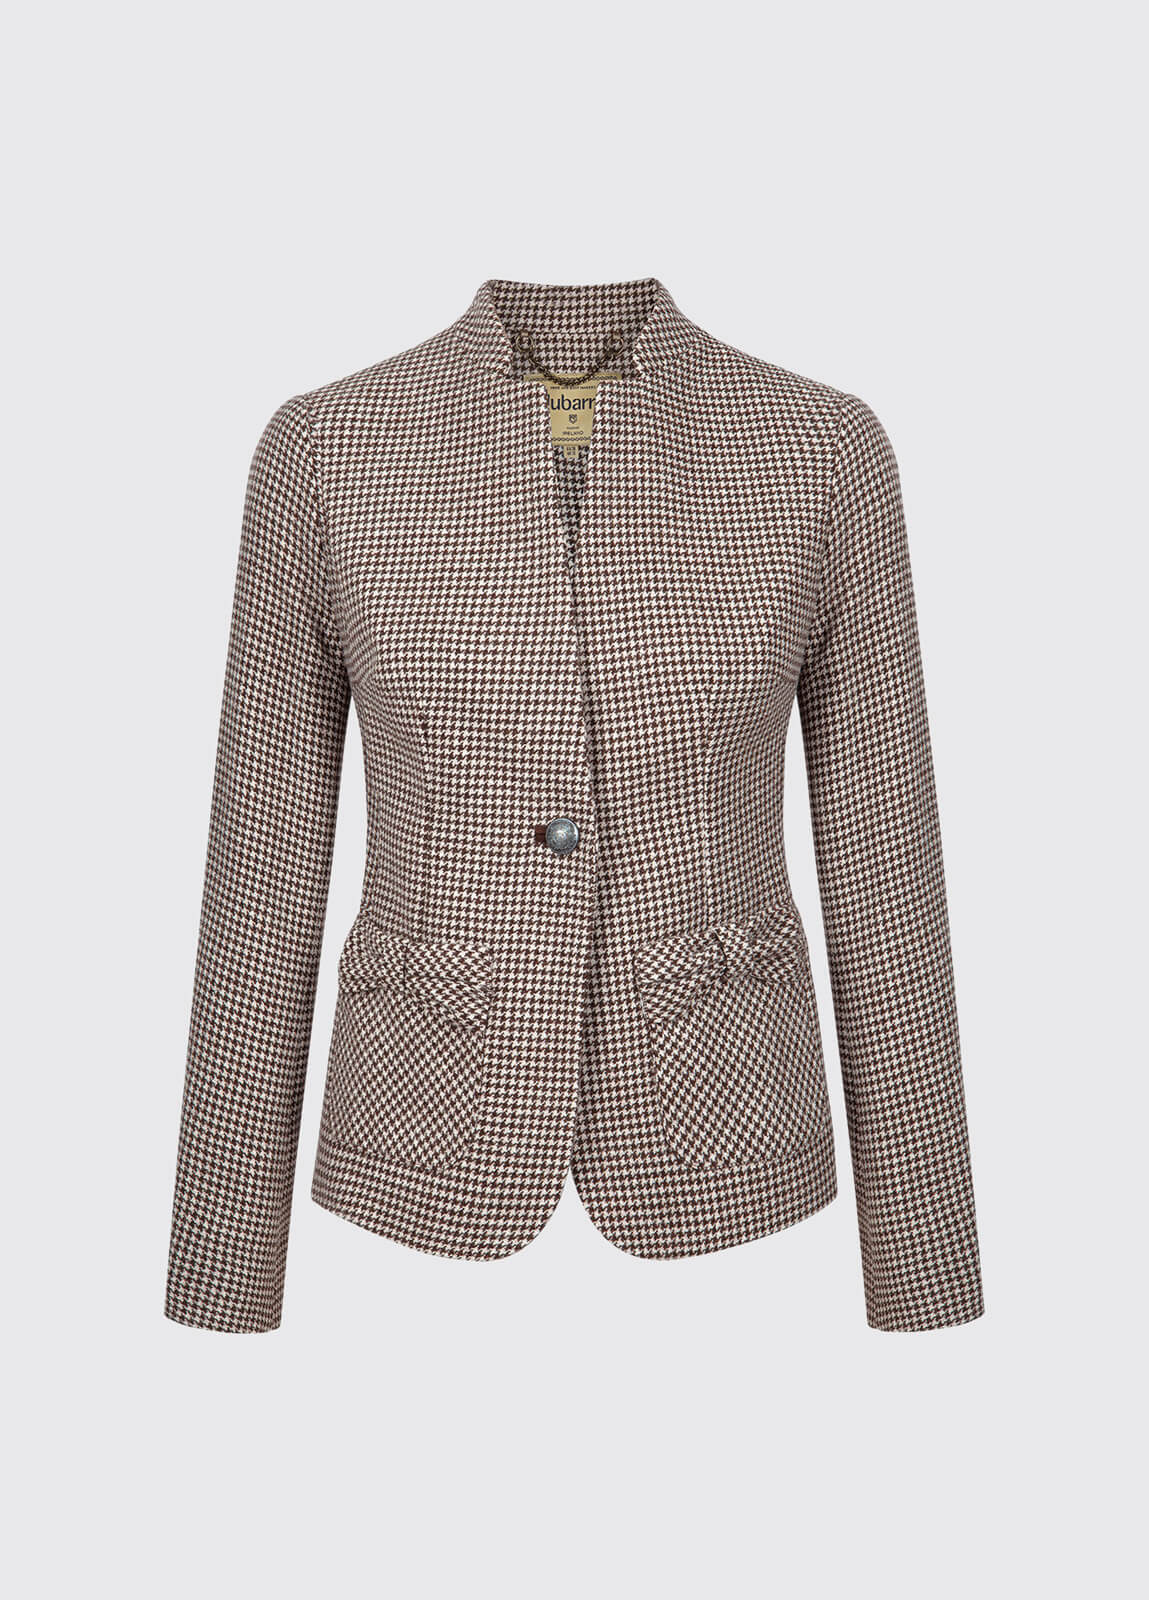 Jasmine Tailored Tweed Jacket - Cafe